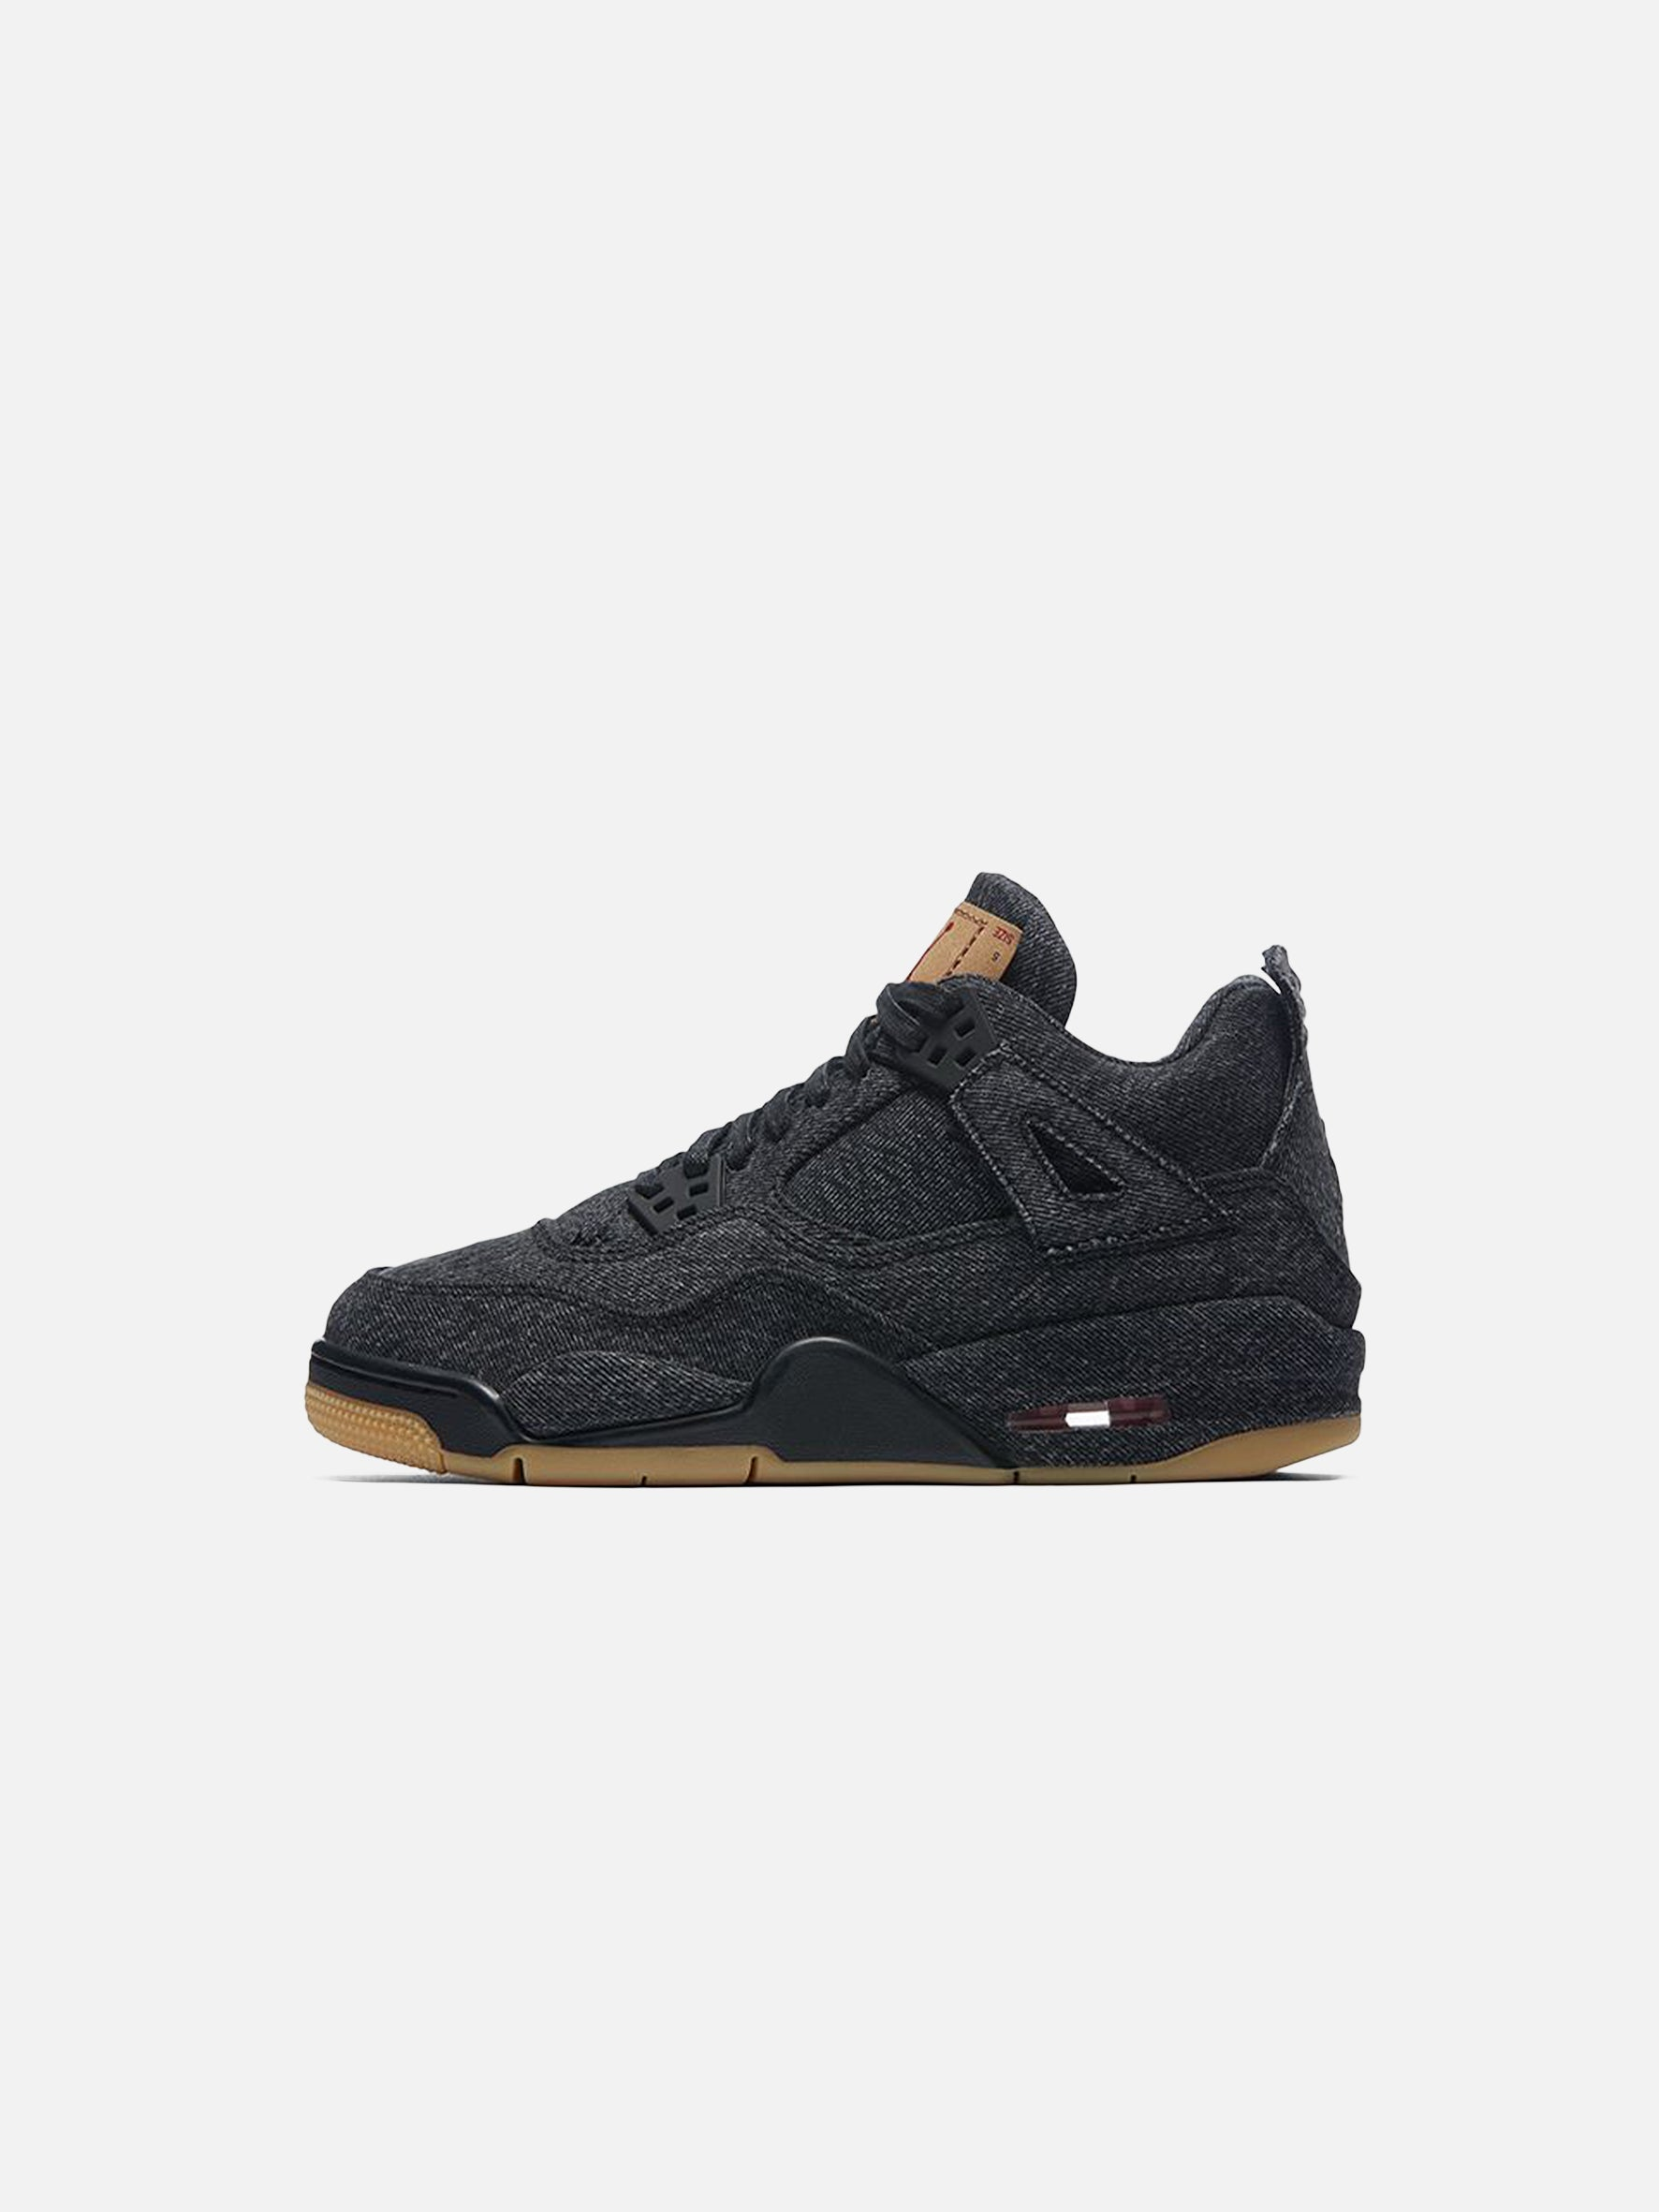 Nike Air Jordan IV Levi's® Black